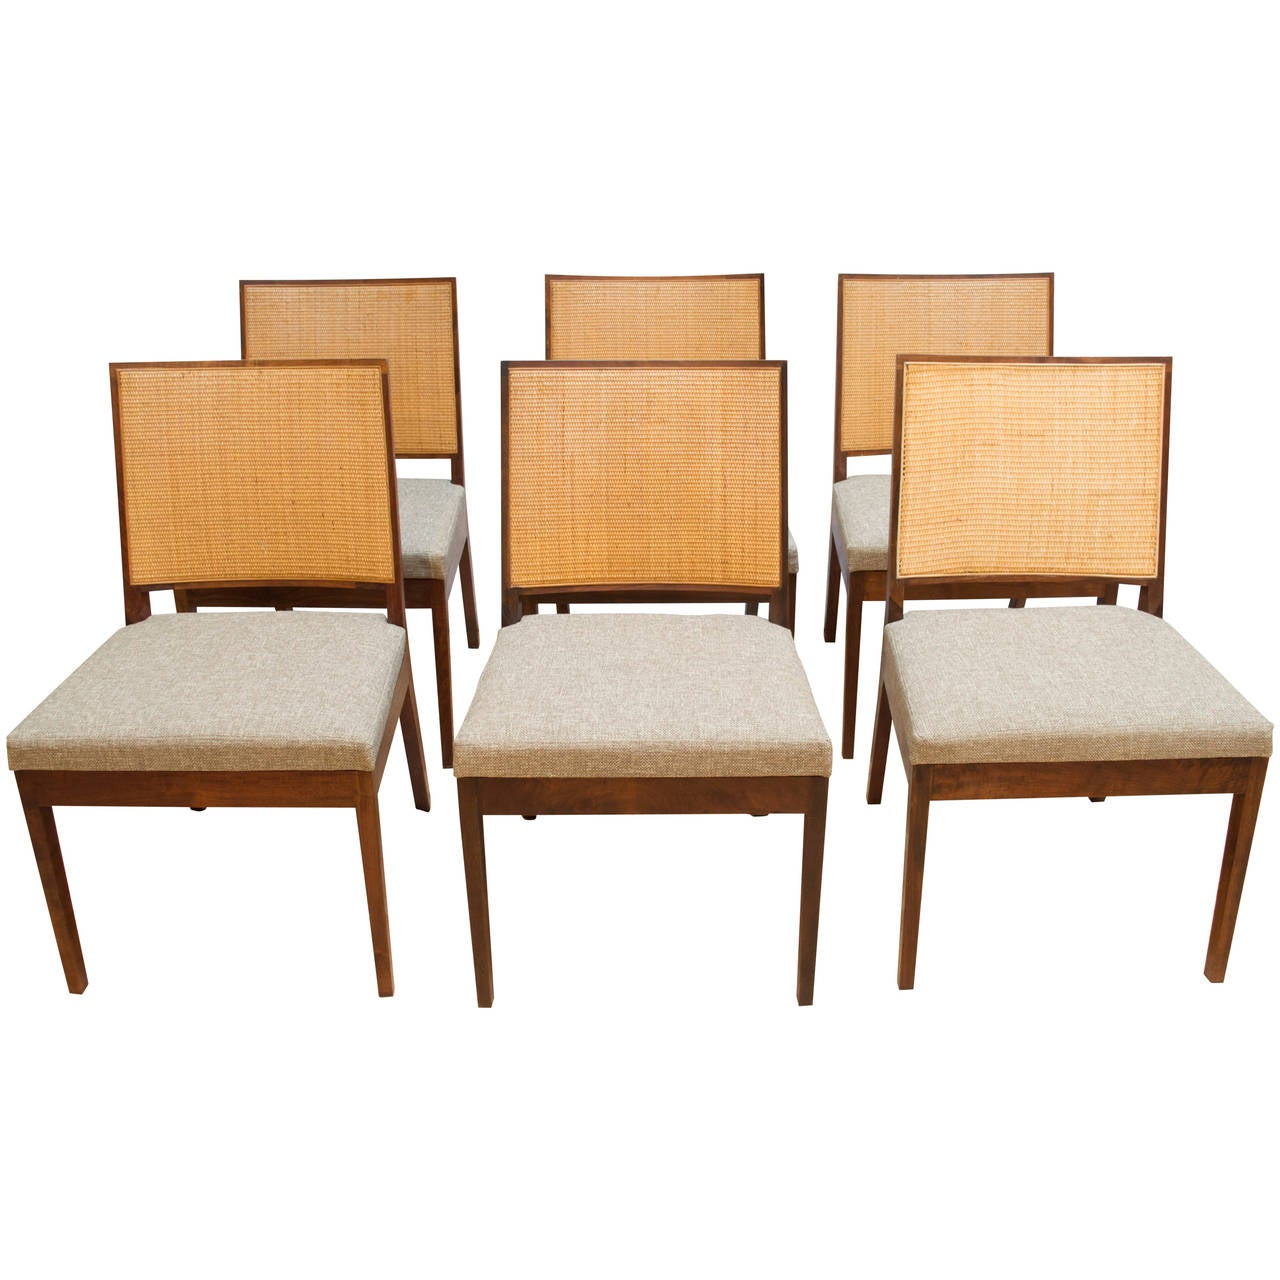 Set Of Six Walnut And Cane Dining Chairs By John Kapel For Glenn California 1